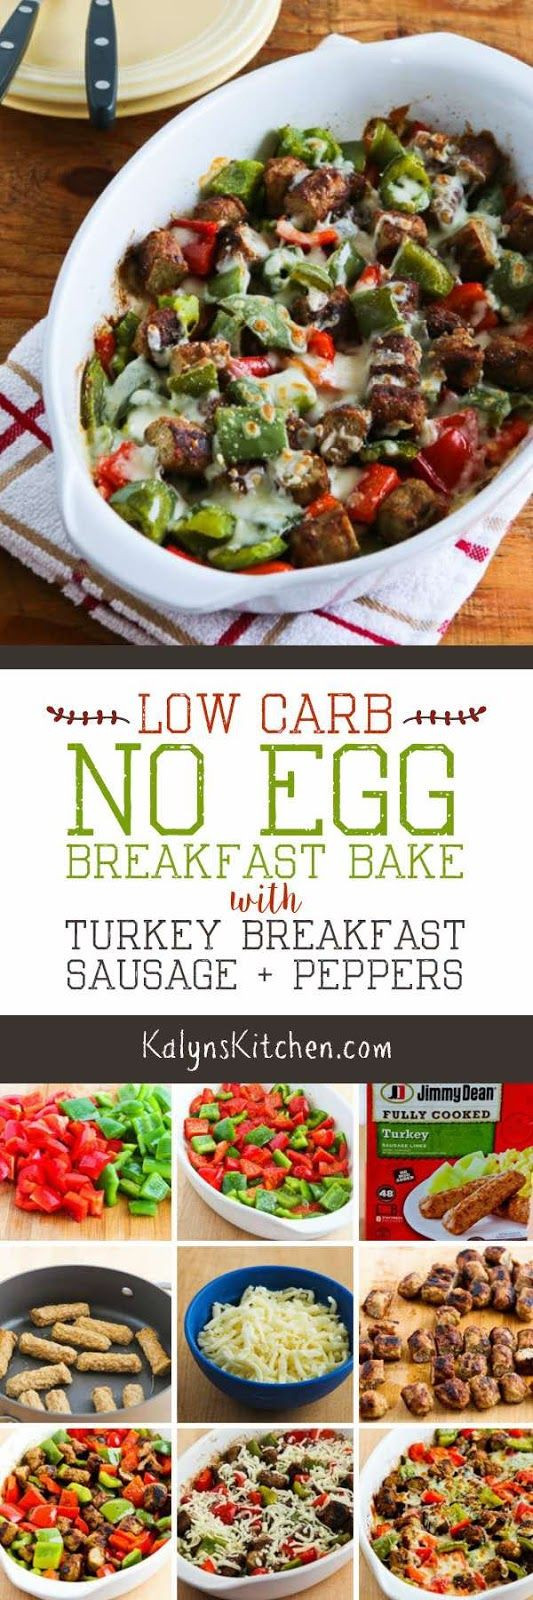 Healthy No Carb Breakfast  best images about Best Low Carb Recipes on